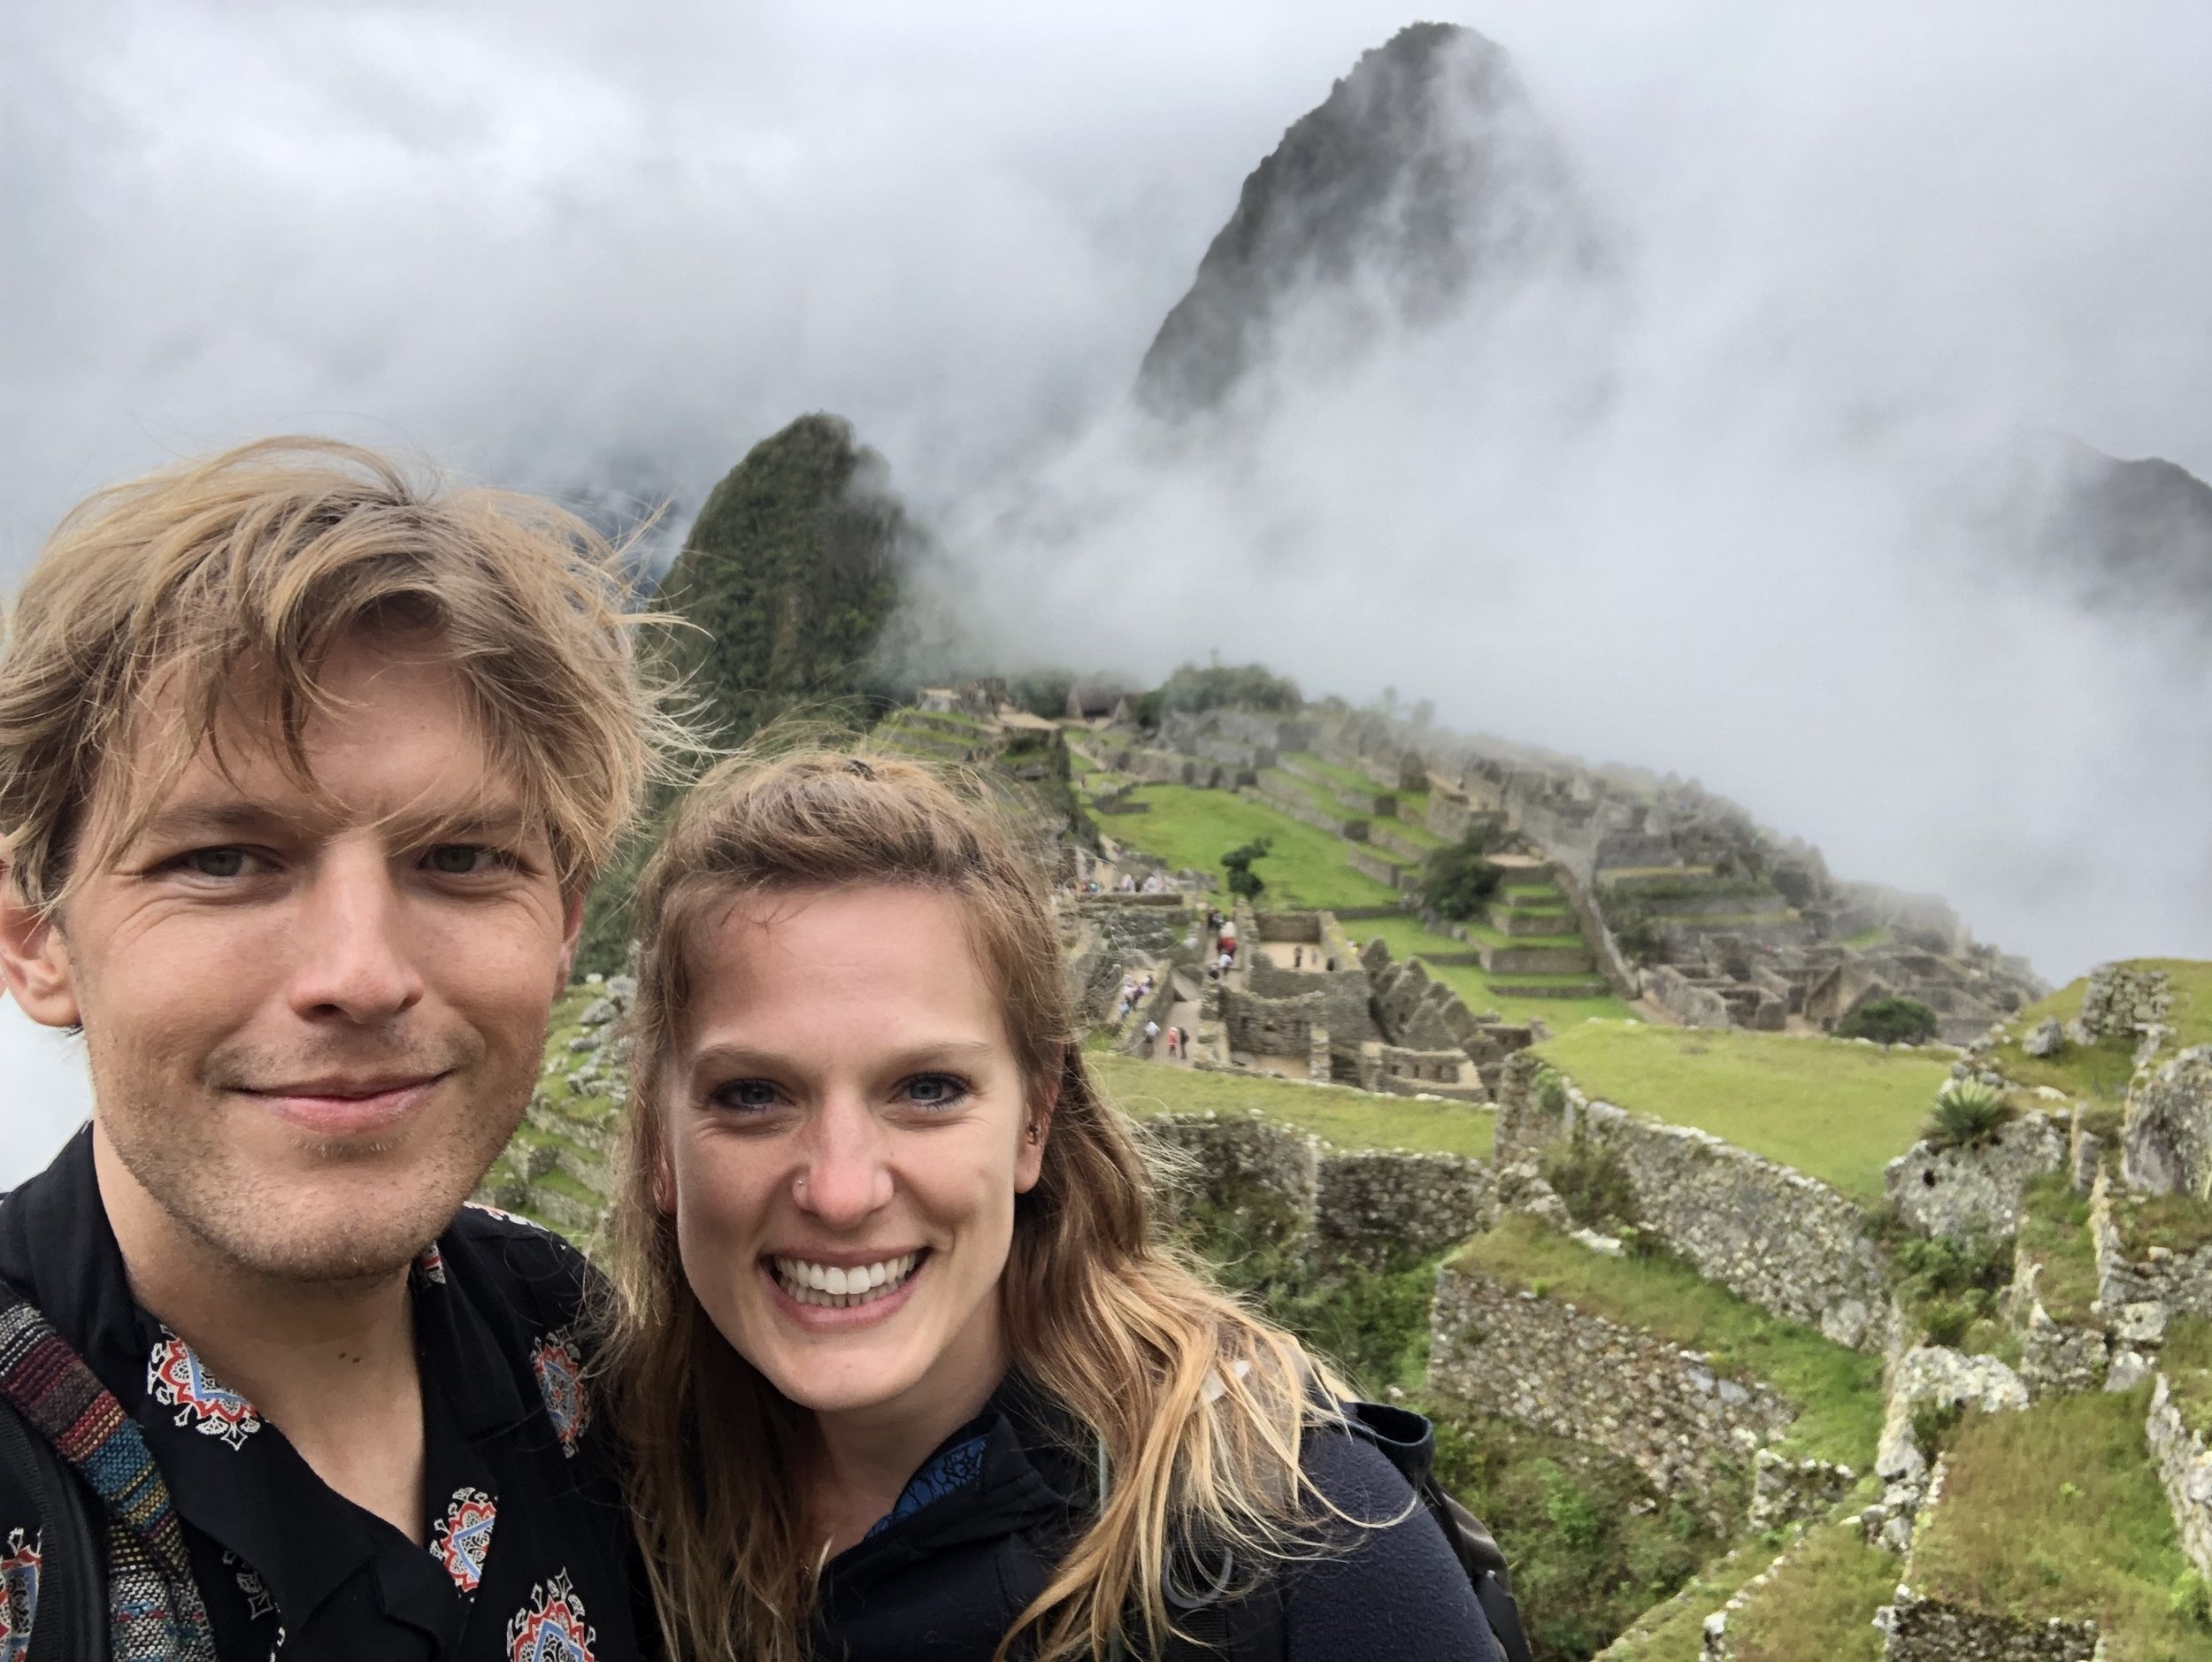 We made it to Machu Picchu! And had a break in the dreaded fog for this photo.